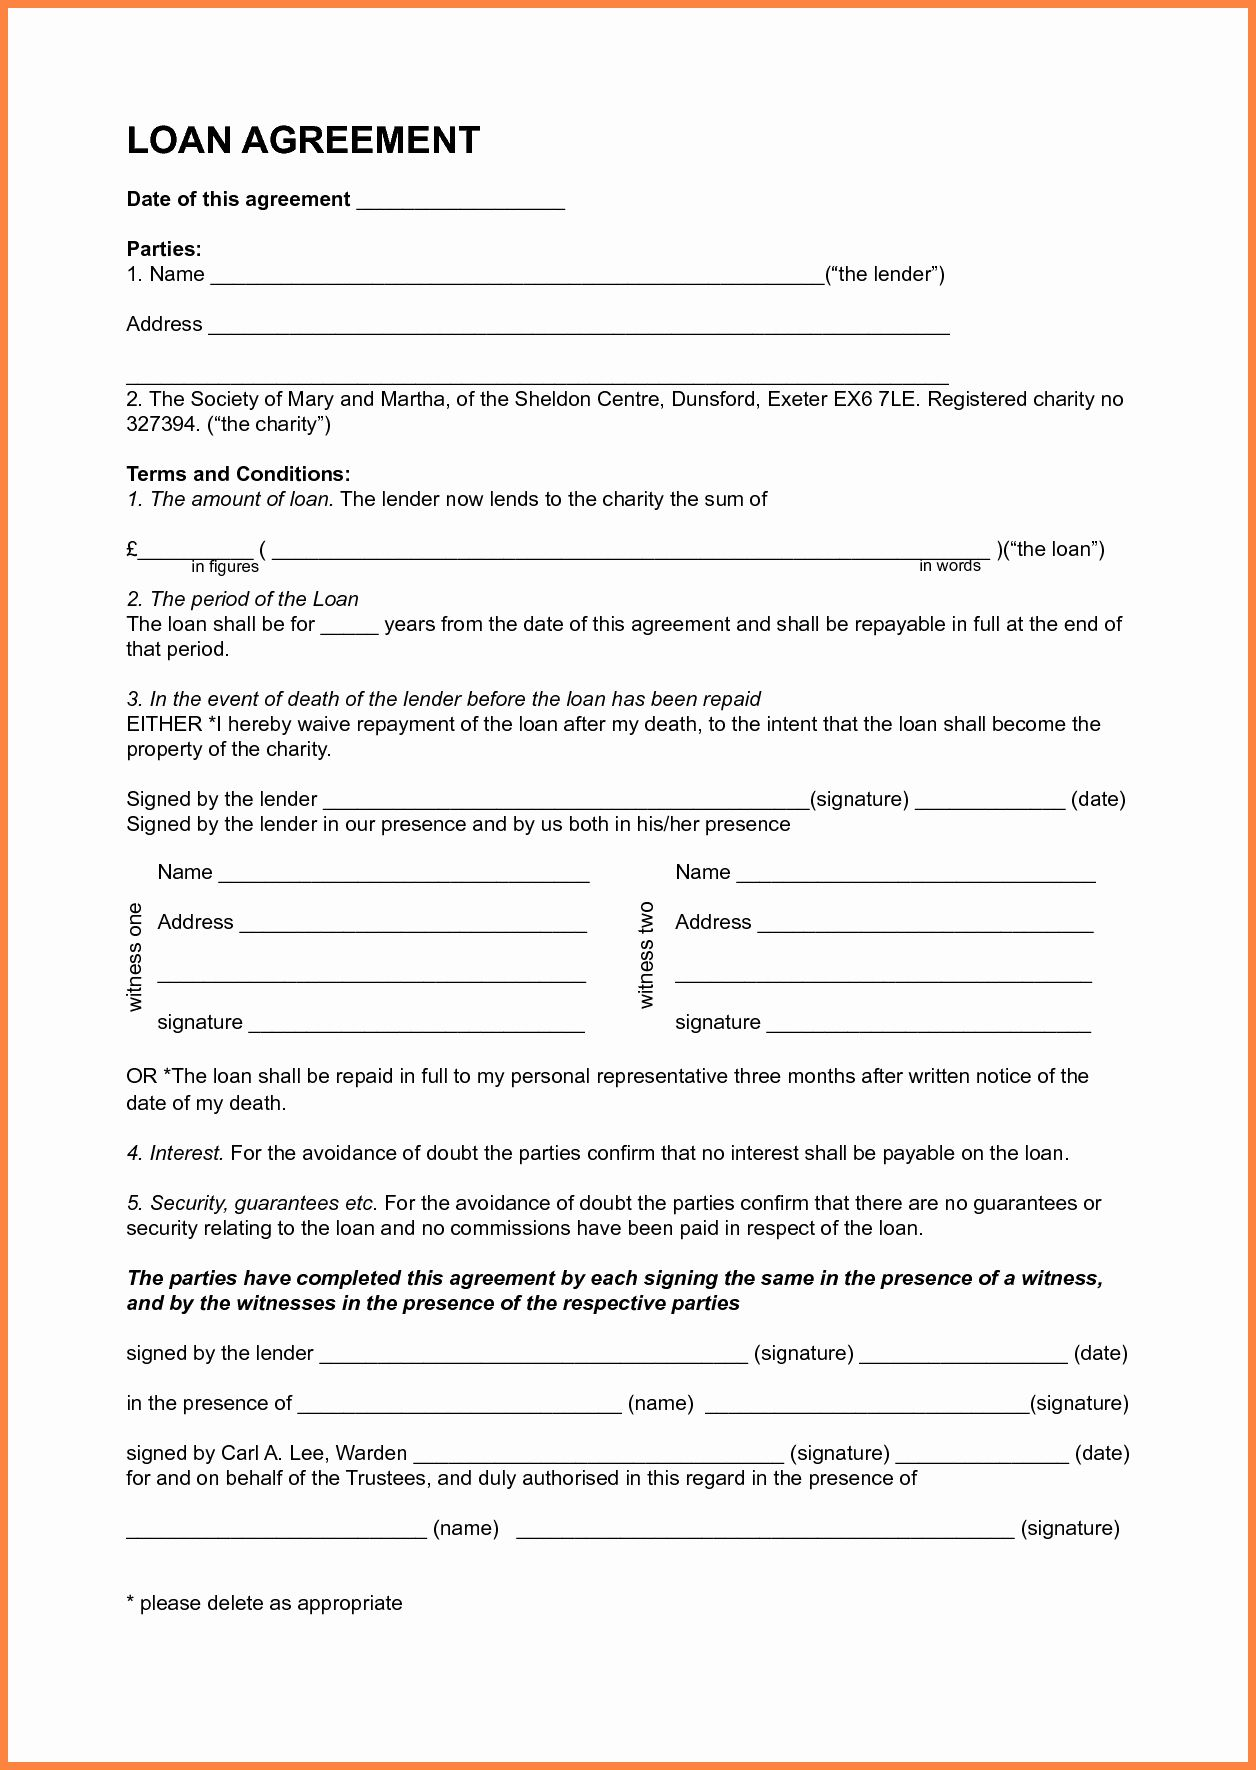 Personal Loan Contract Template Fresh 7 Template Loan Agreement Between Family Members In 2020 Personal Loans Contract Template Loan